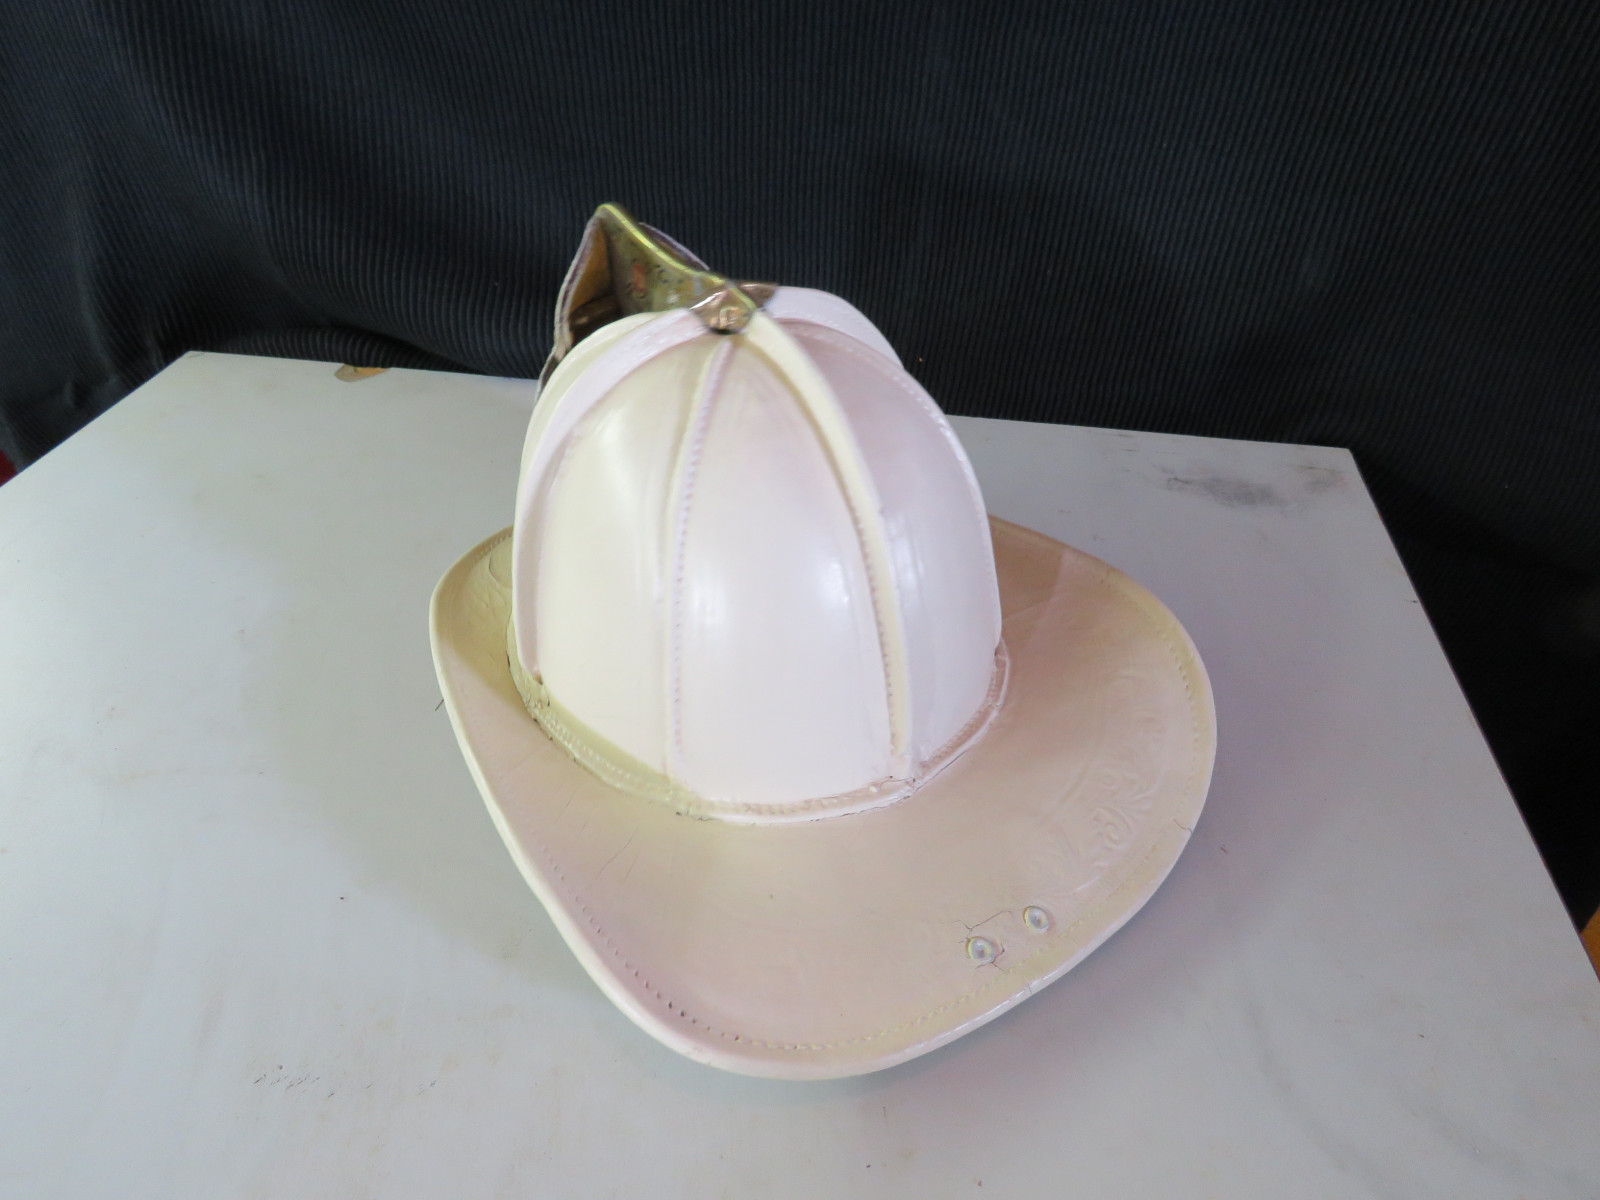 Fire Chief Helmet - Image 2